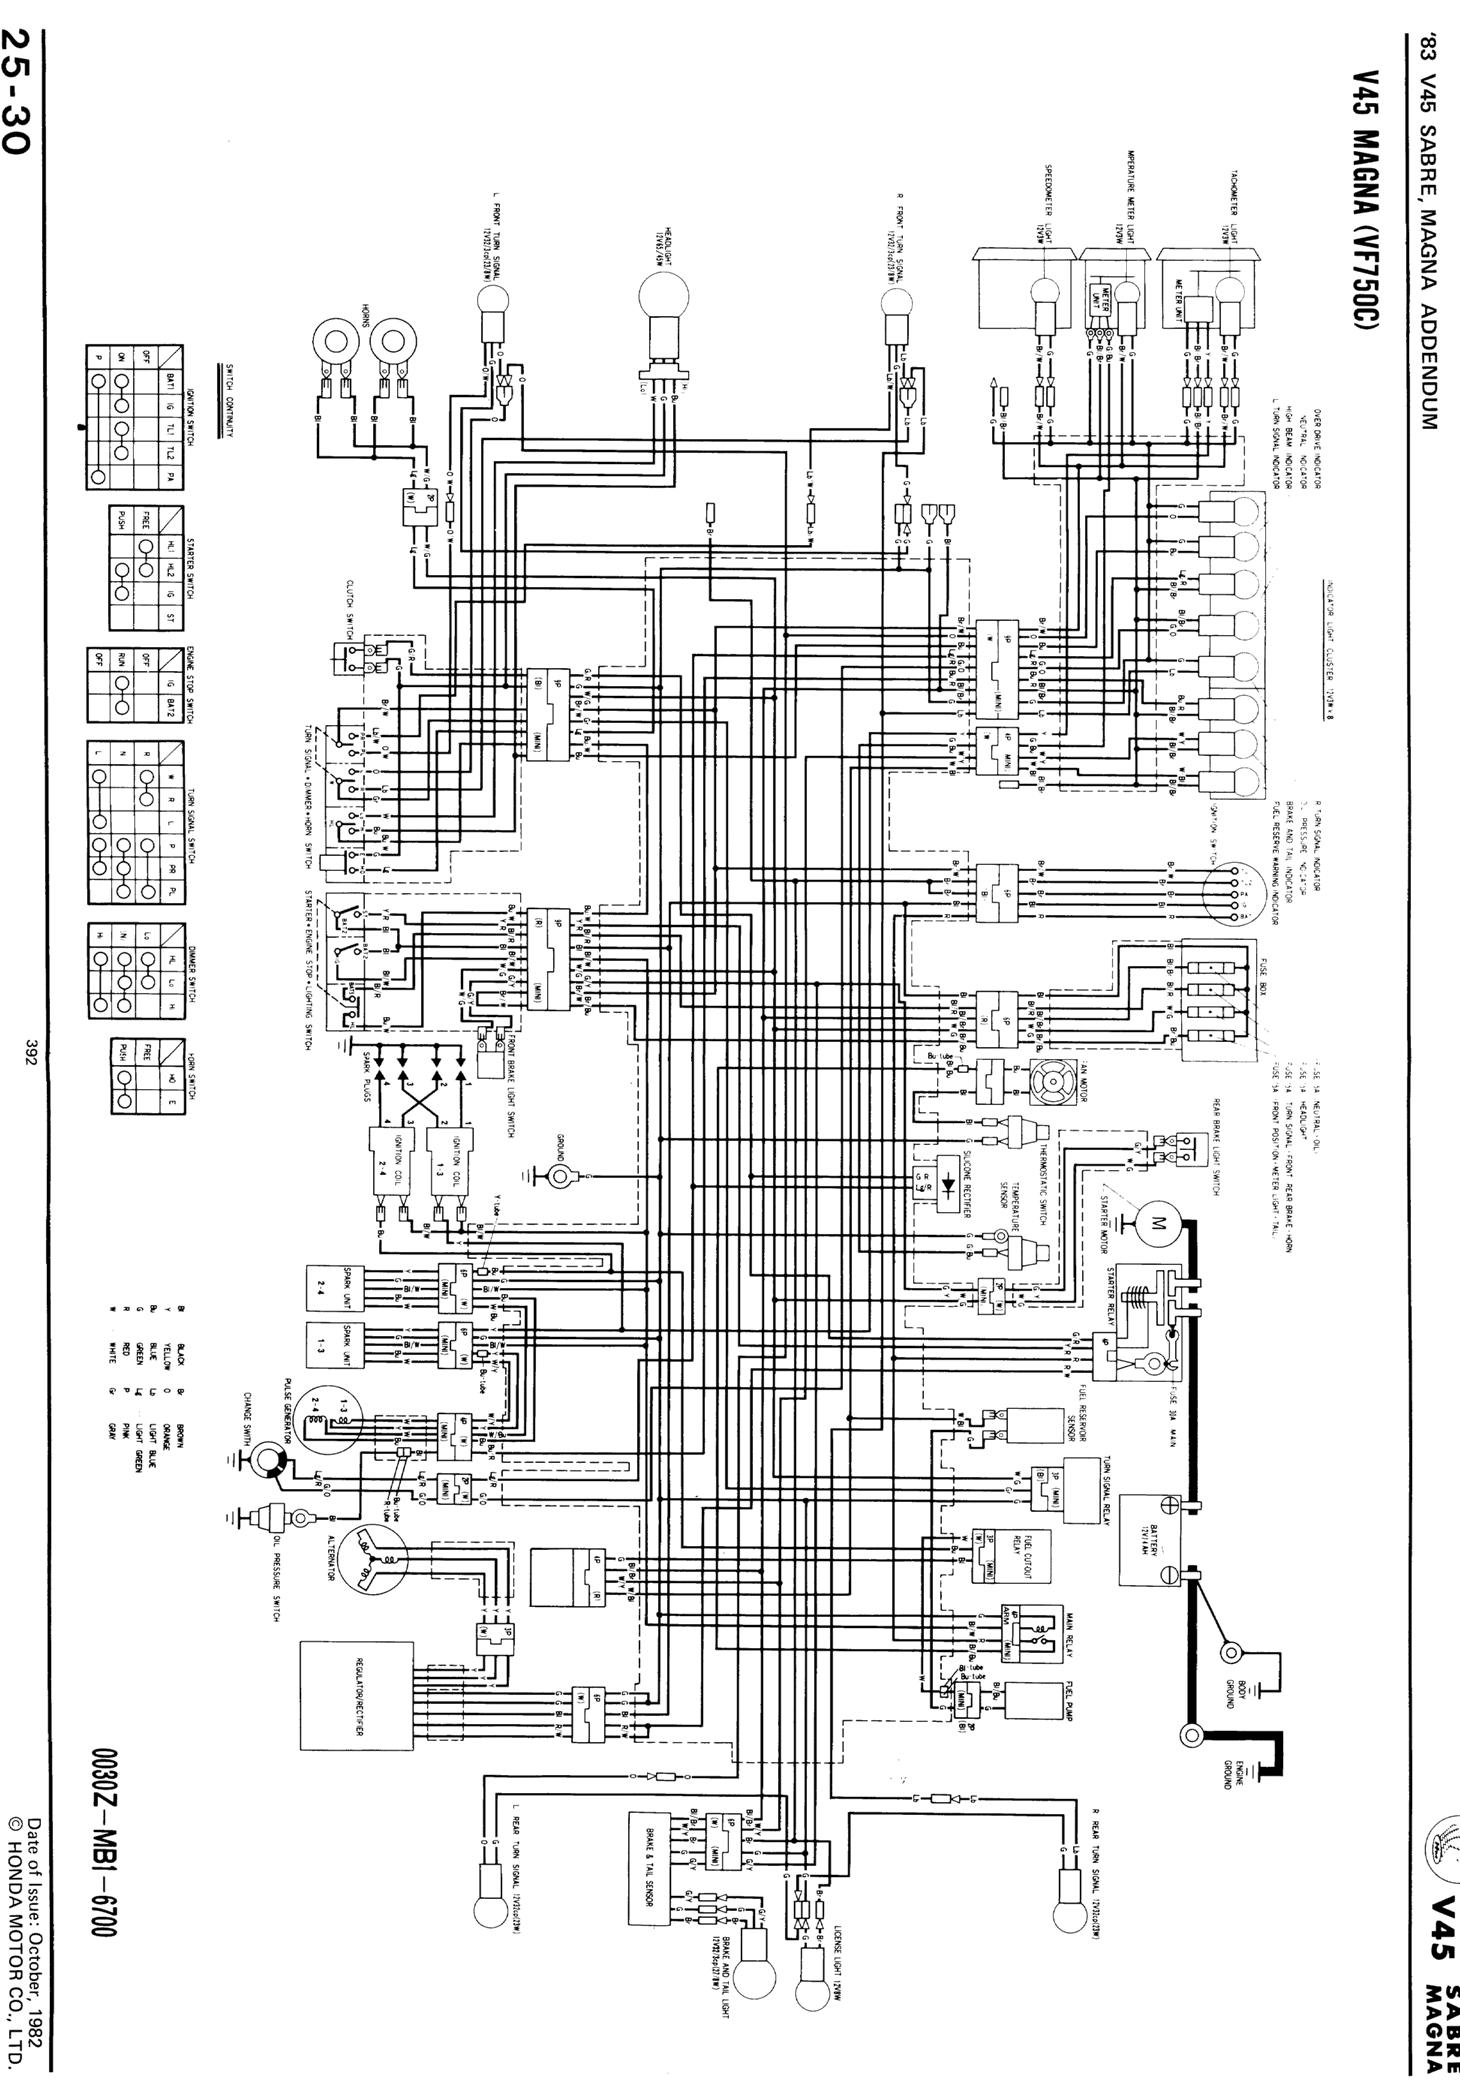 Wire Harness Diagram 1984 Vf1100c - Wiring Diagrams Delete on